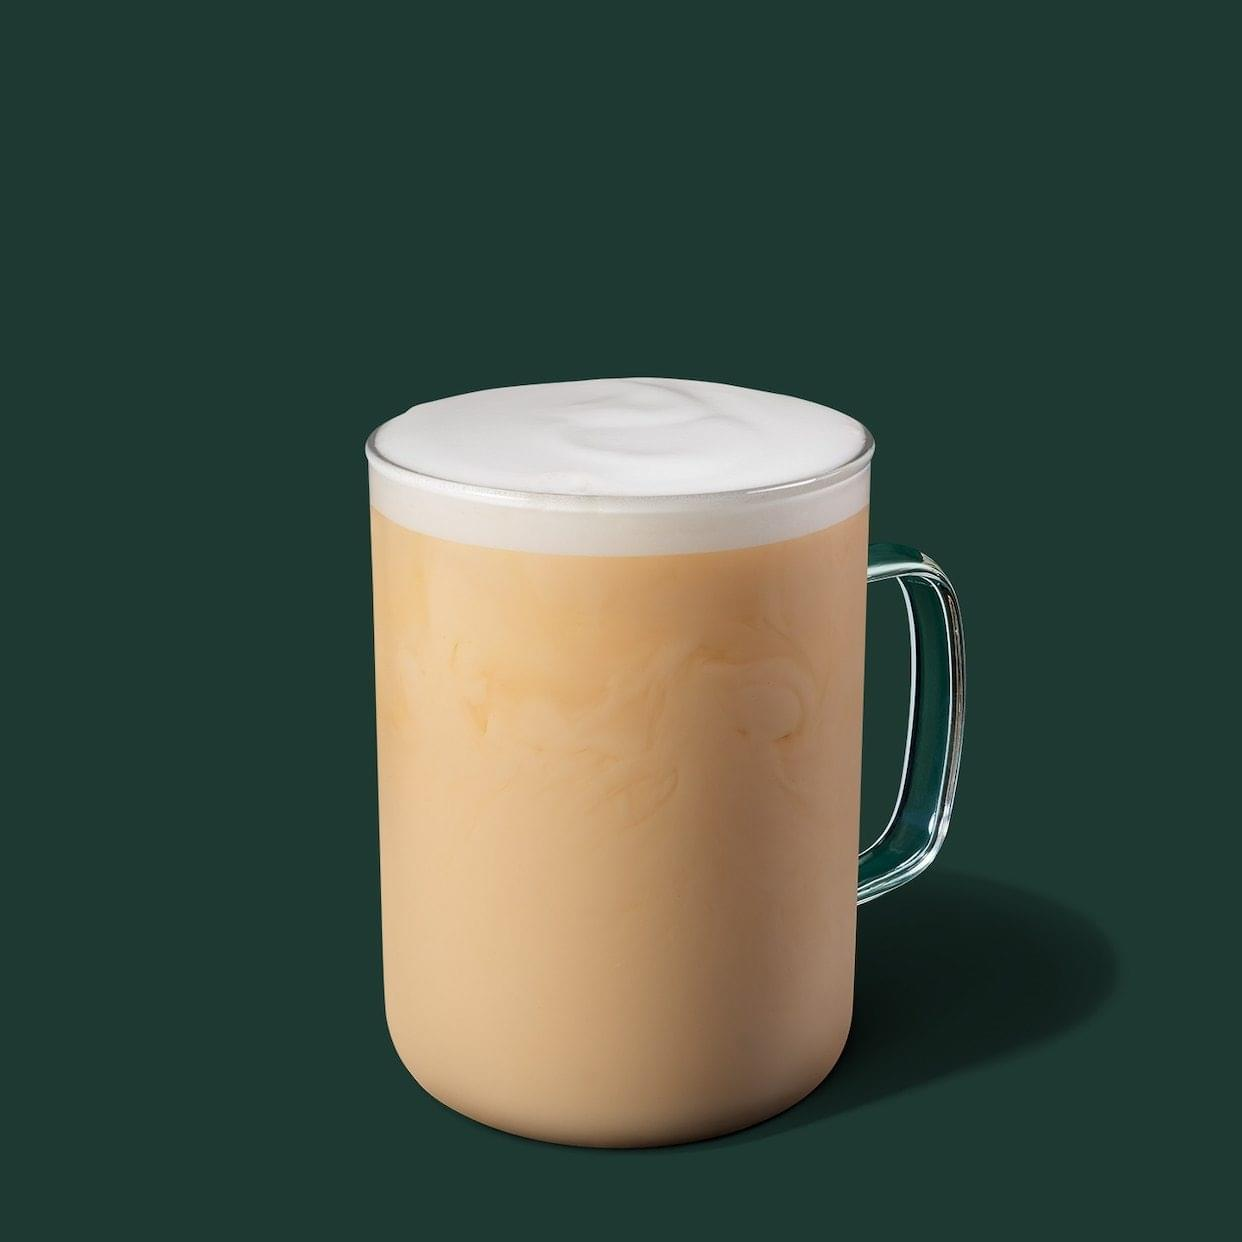 Starbucks Royal English Breakfast Tea Latte Nutrition Facts